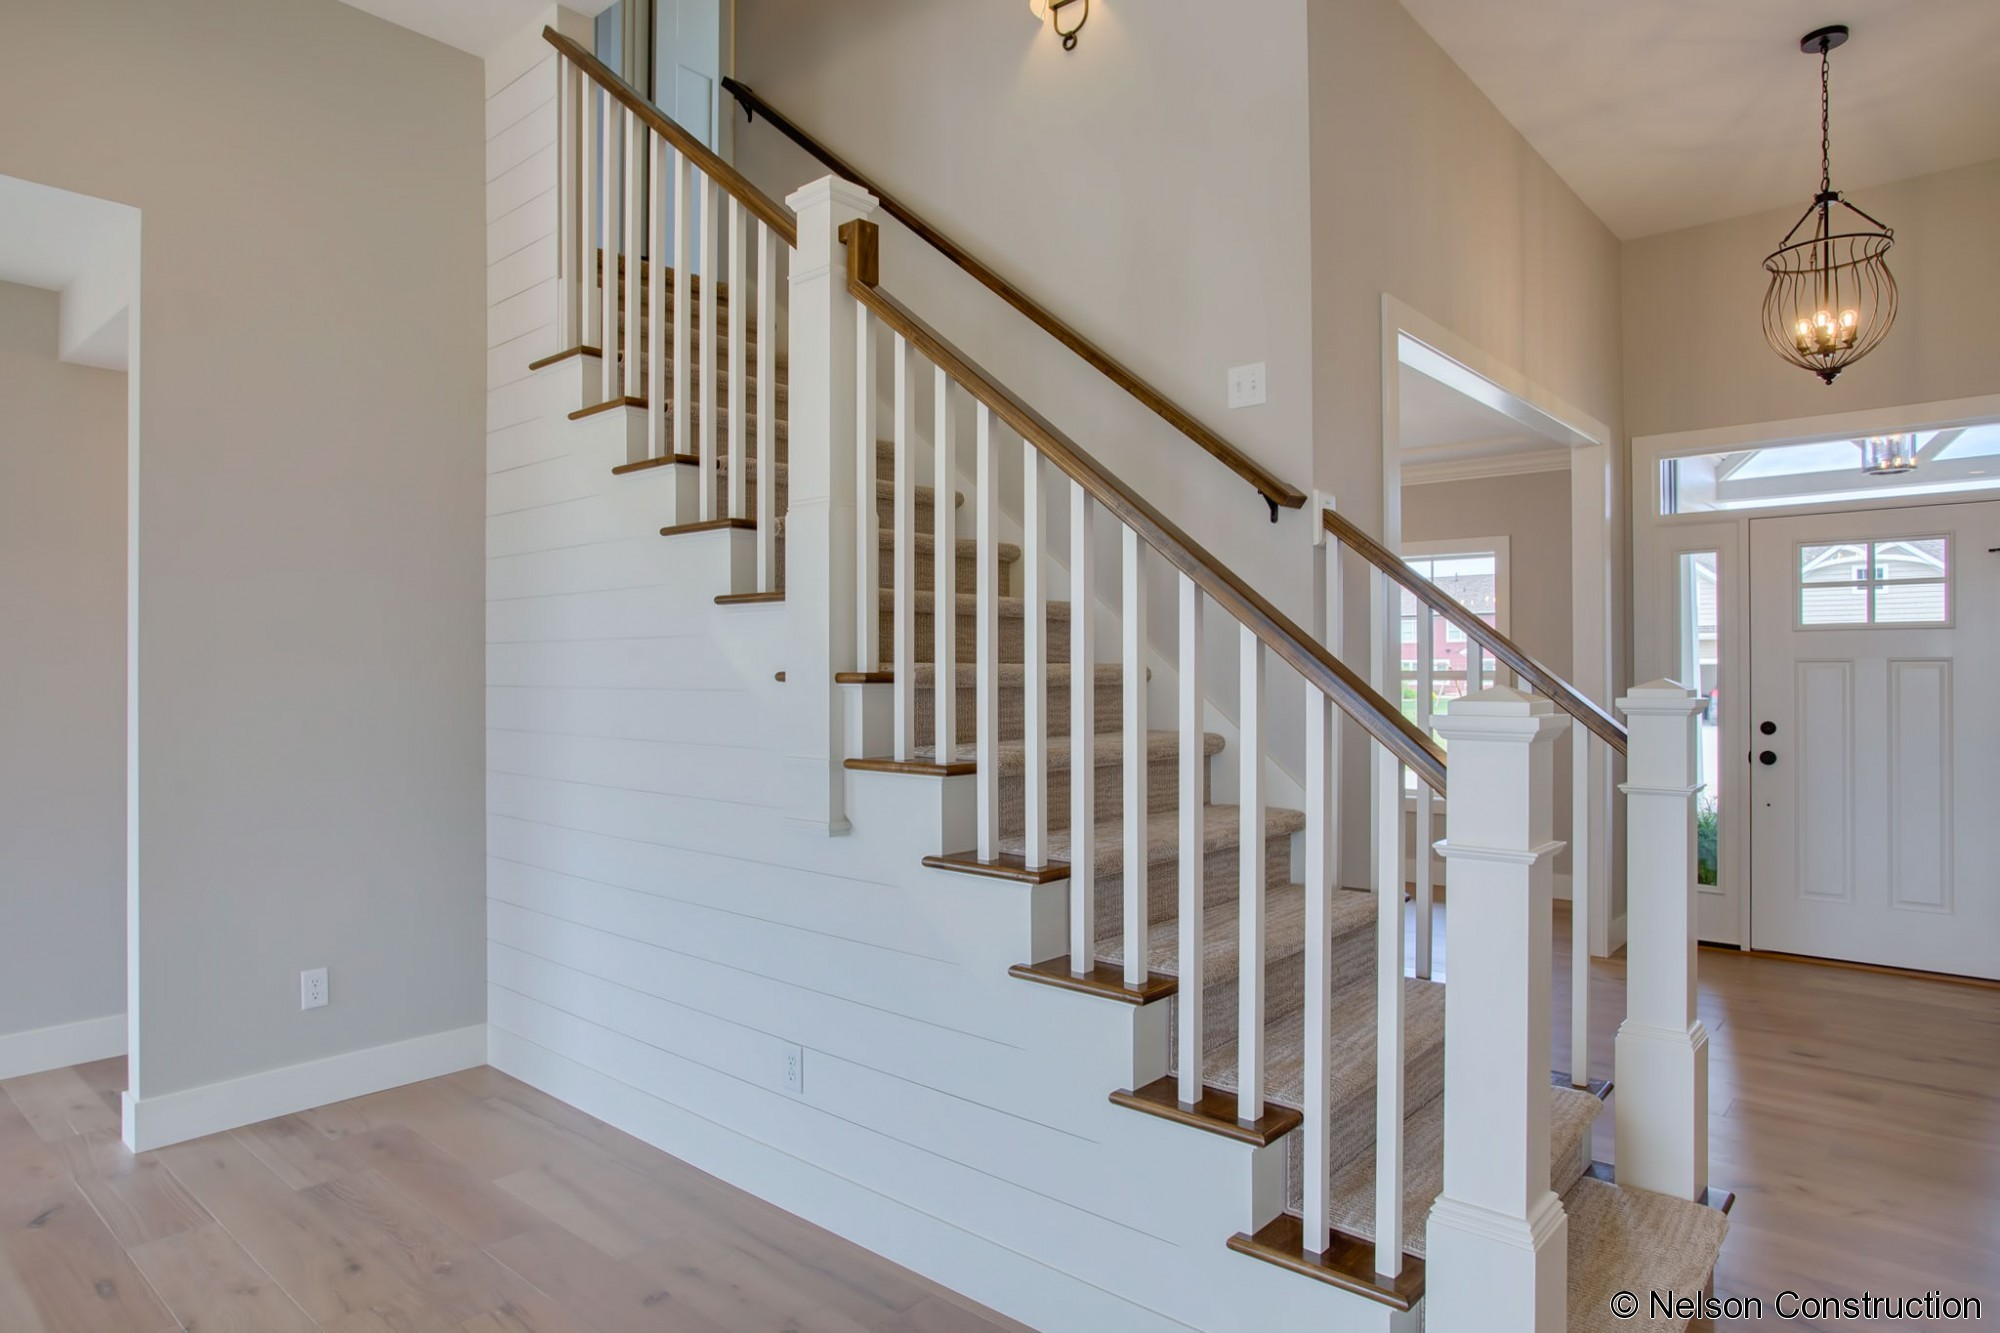 The centerpiece of the living area in the new Cherrydale home is a shiplap clad staircase, serving as the focal point of the room.